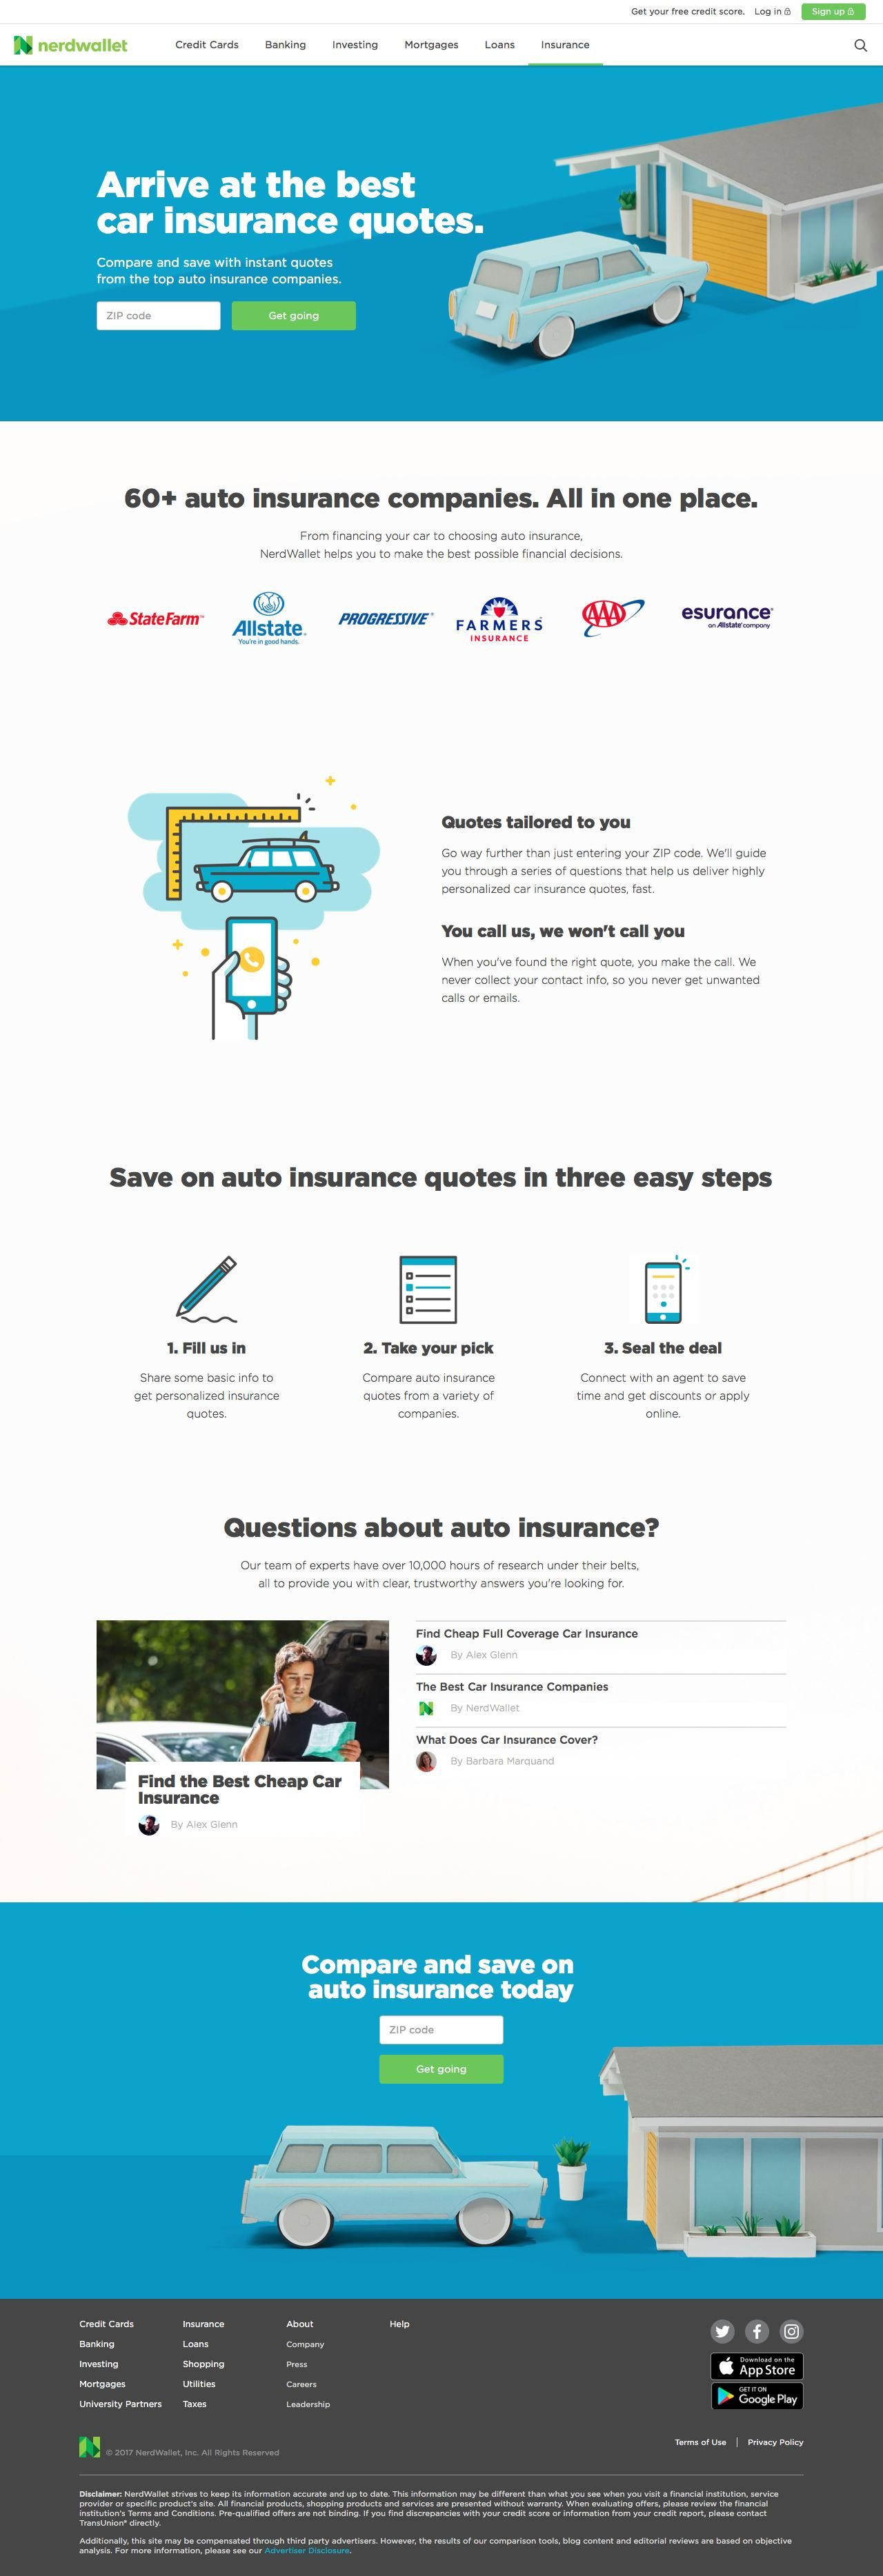 Nerdwallet Com Compare Car Insurance Rates Captured April 4